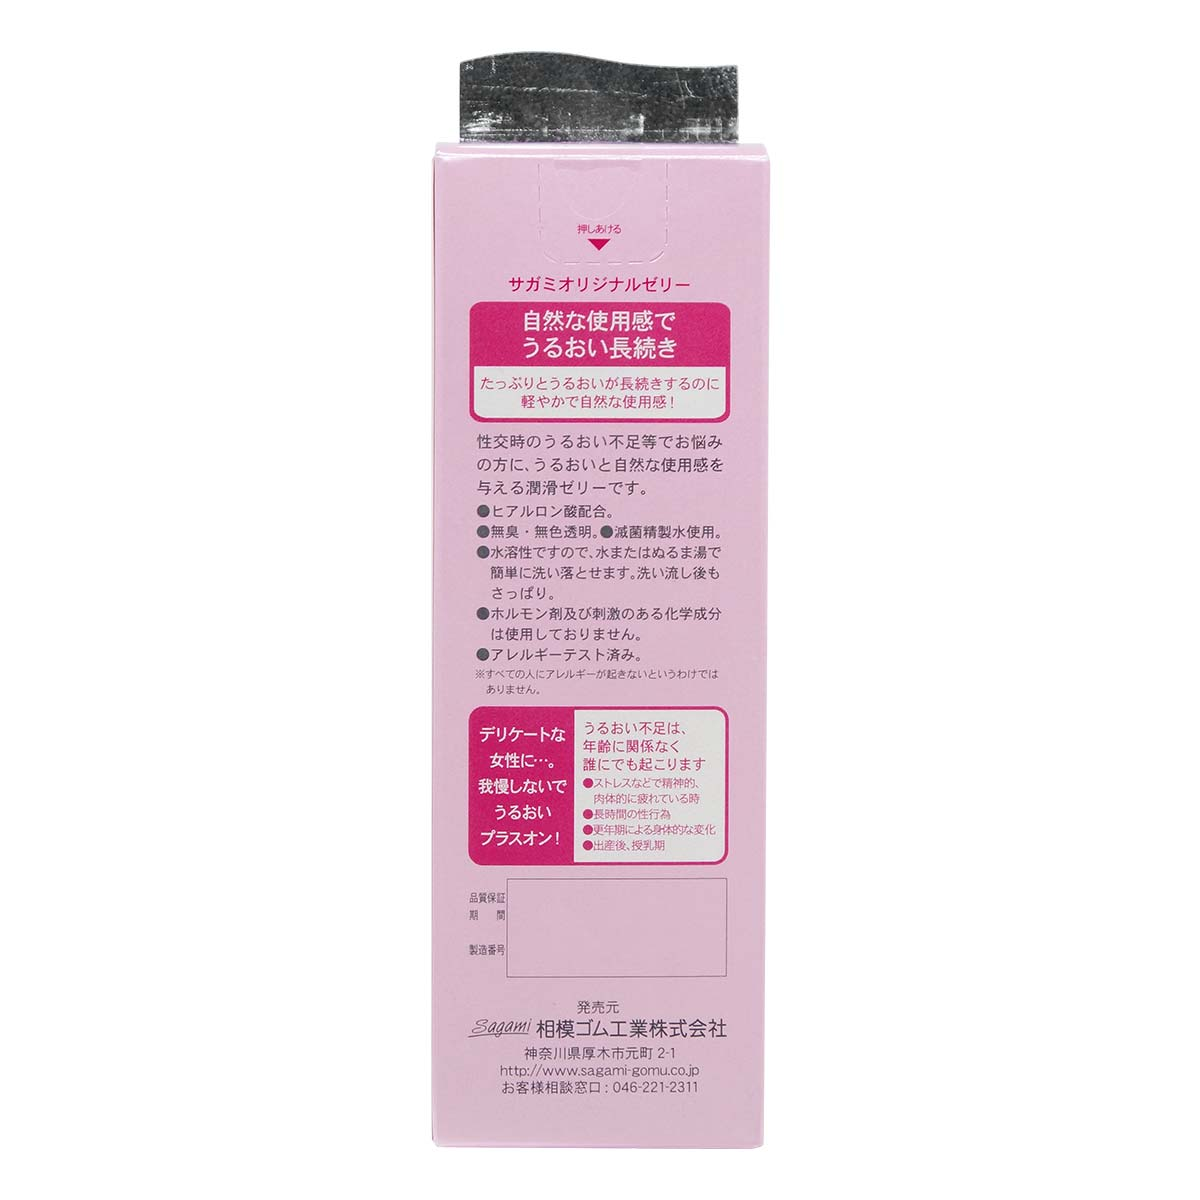 Sagami Original Lubricating Gel 60g Water-based Lubricant